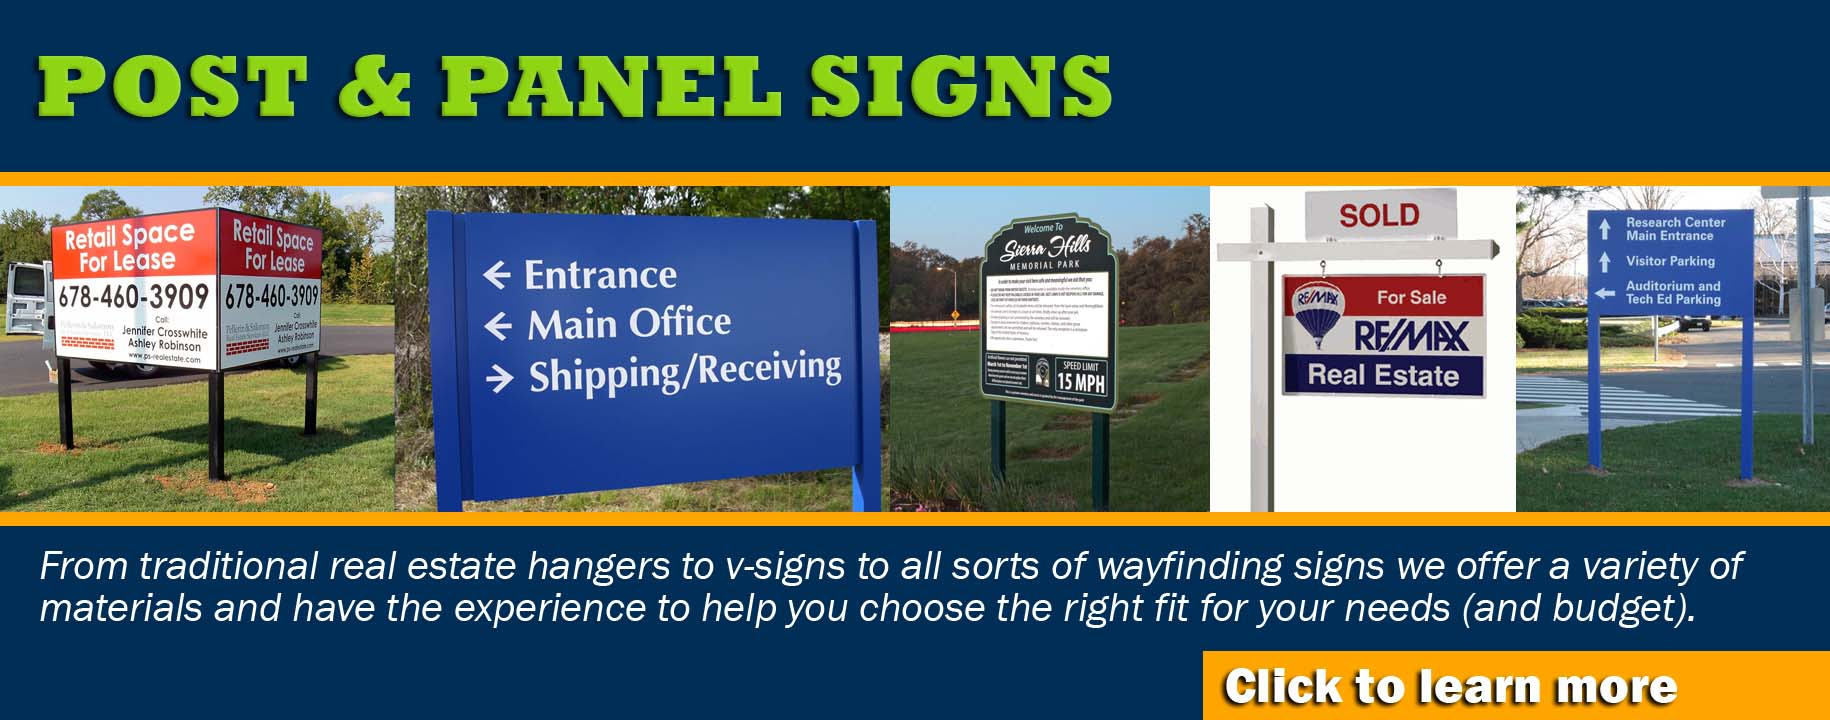 We offer quality outdoor signage of all kinds at different price points